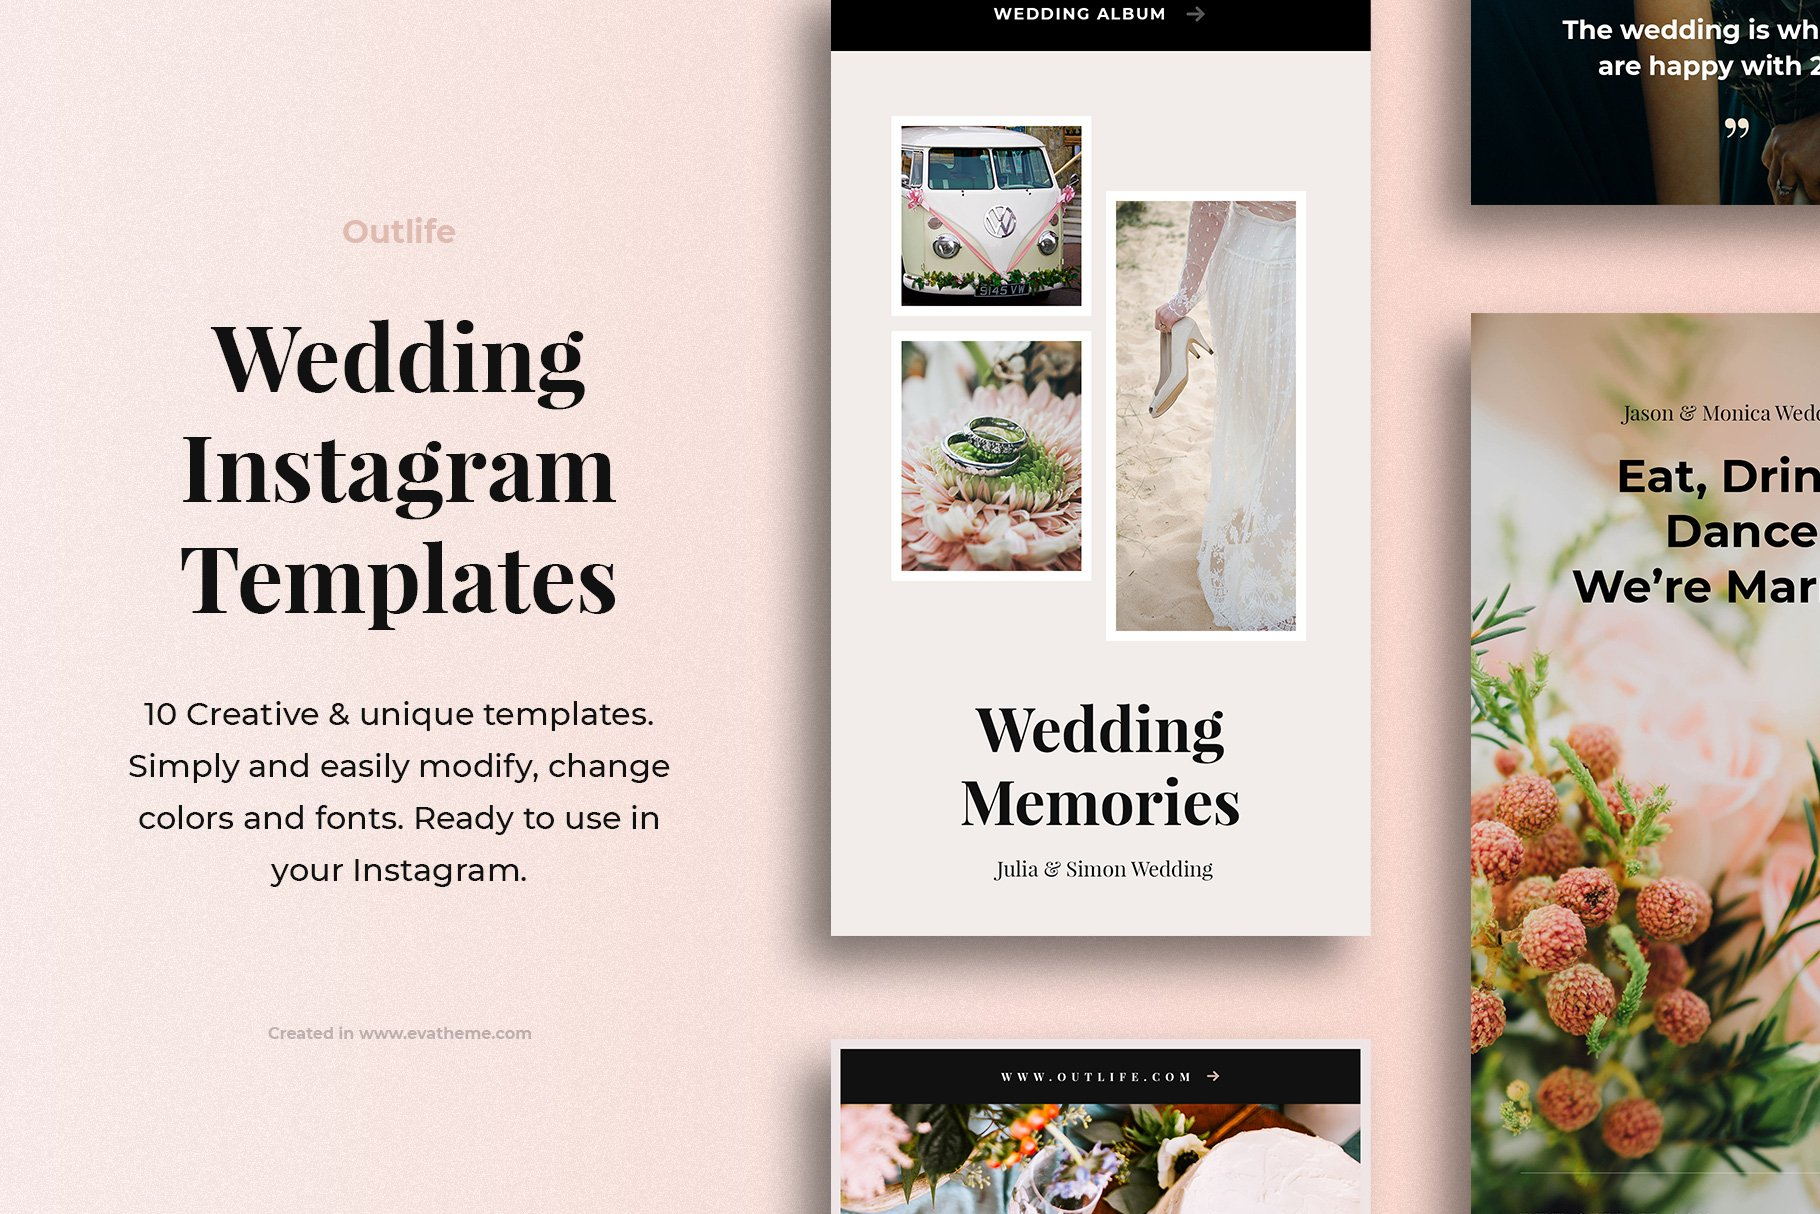 Outlife Wedding Instagram Templates example image 1